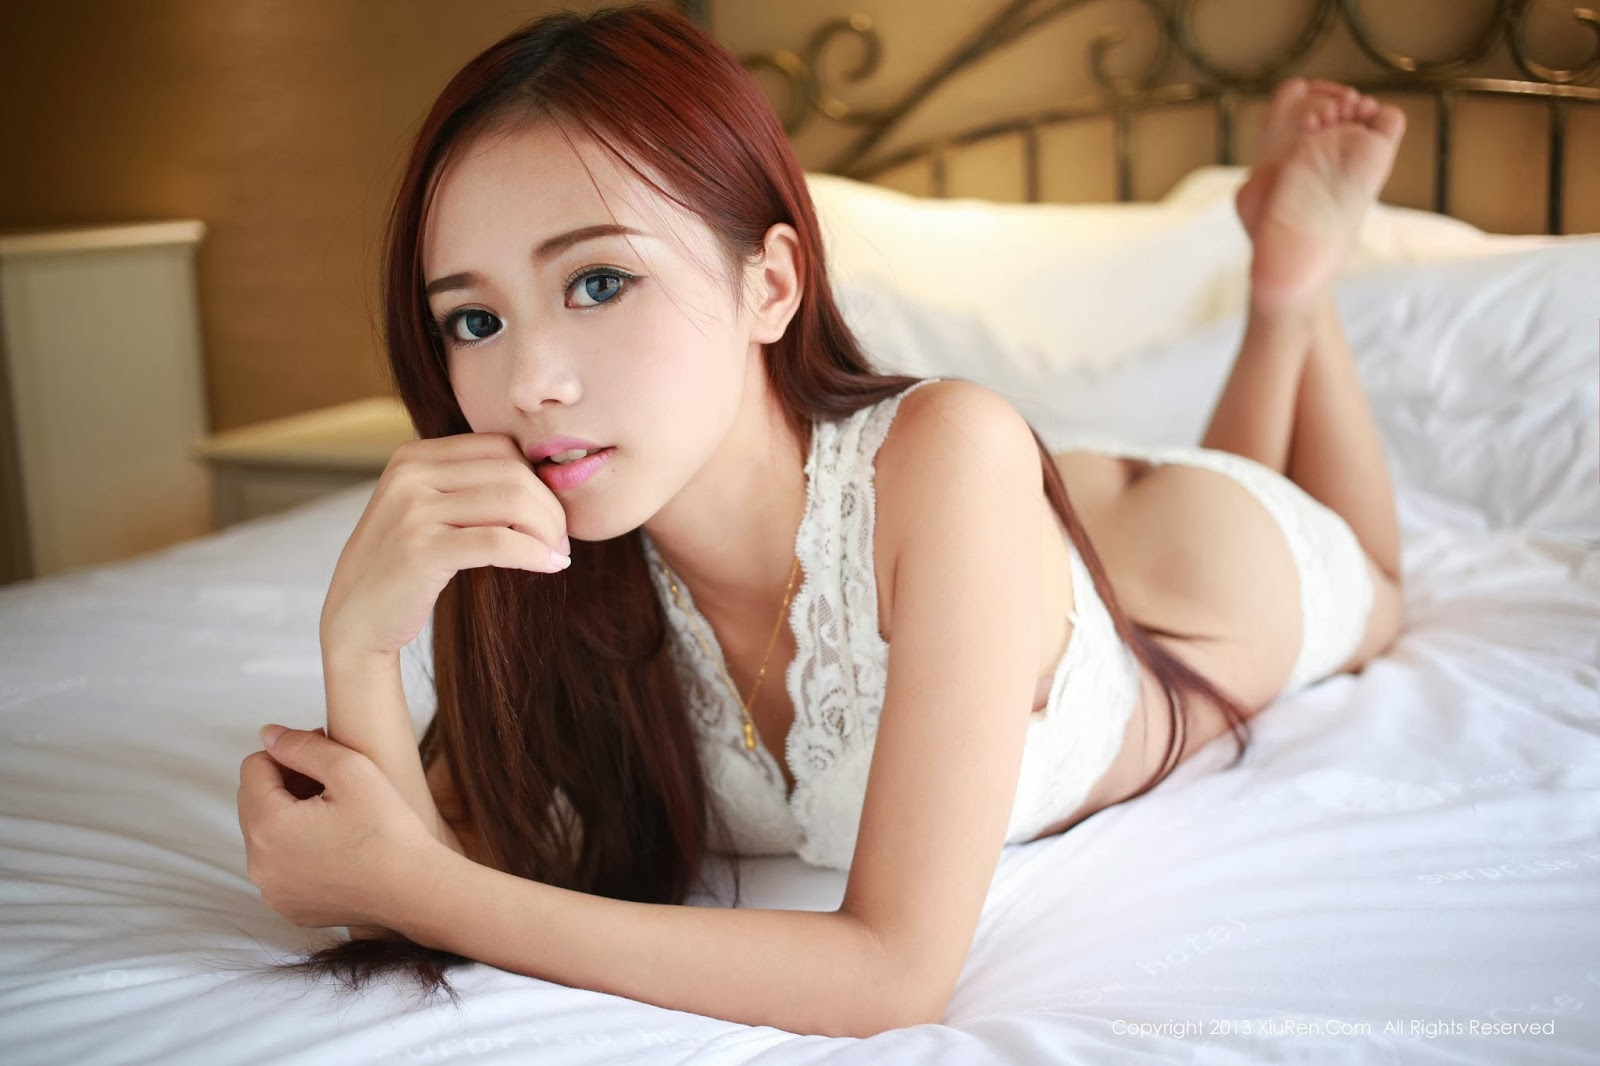 Toro 羽住 私房篇 | Chinese girl see through lingerie | Special ...